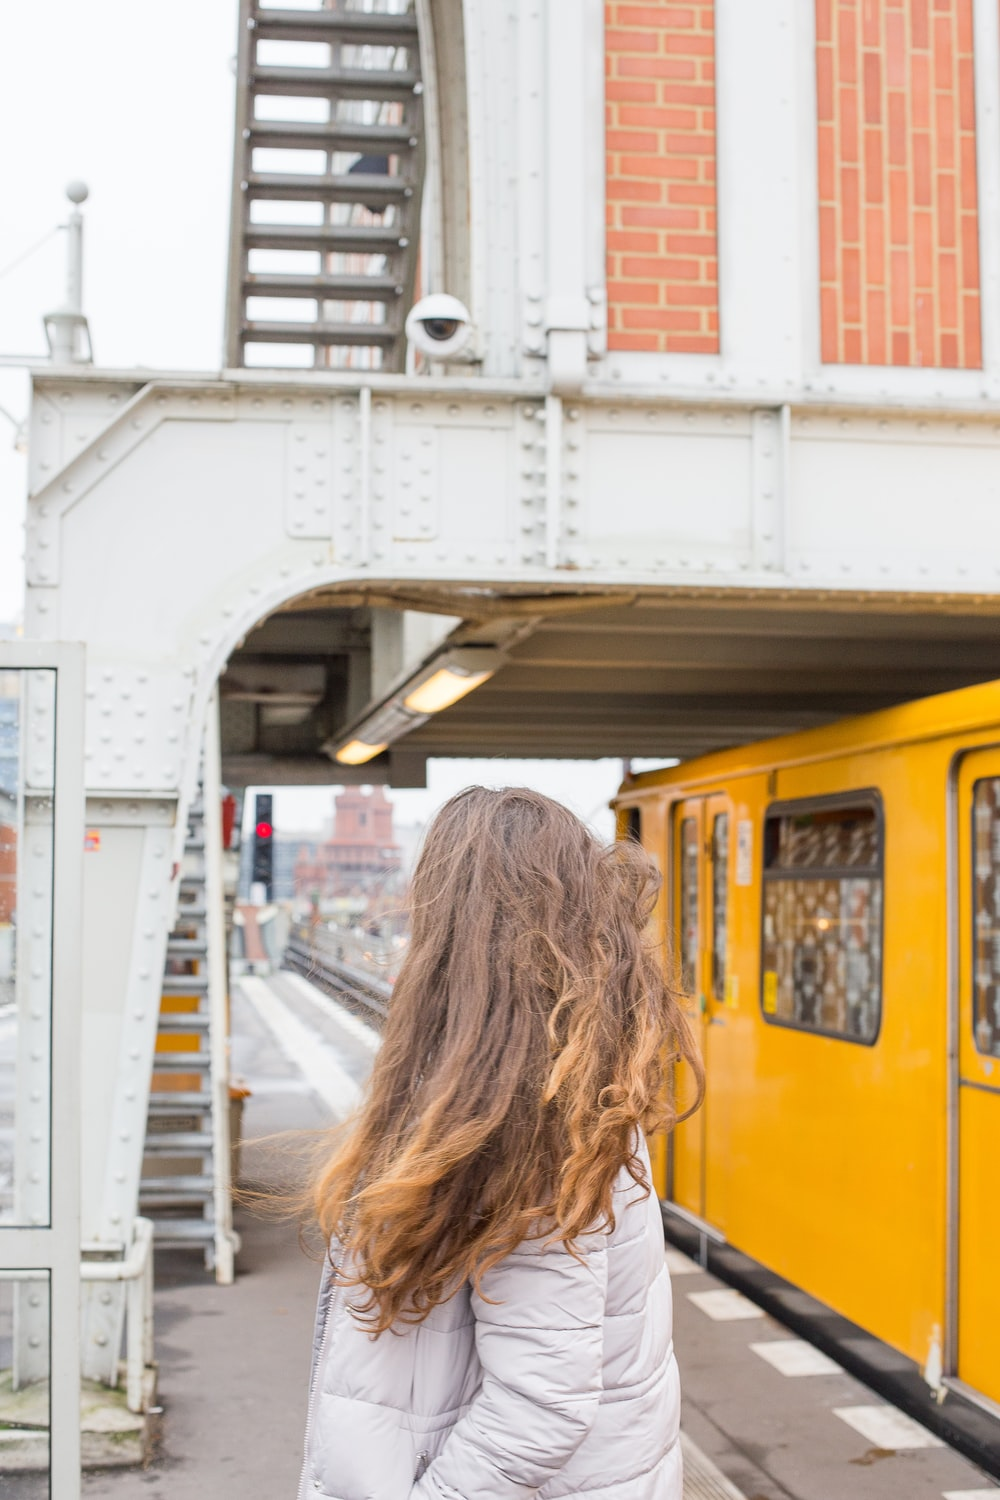 woman in white shirt standing near yellow train during daytime